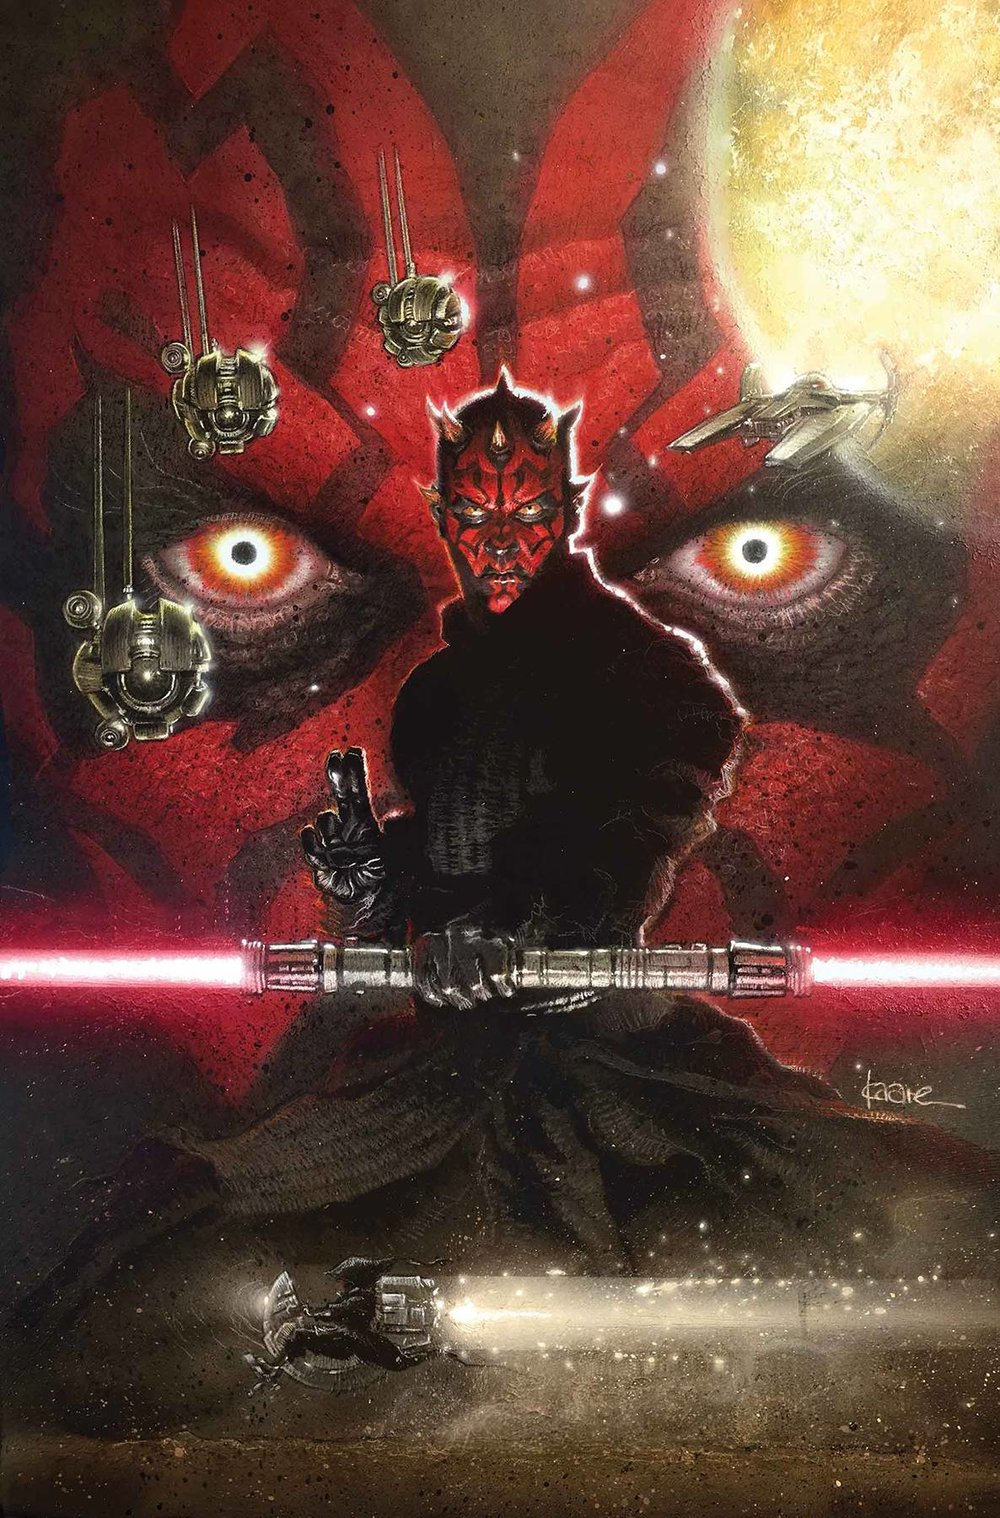 STAR WARS DARTH MAUL 5 of 5 ANDREWS VAR.jpg